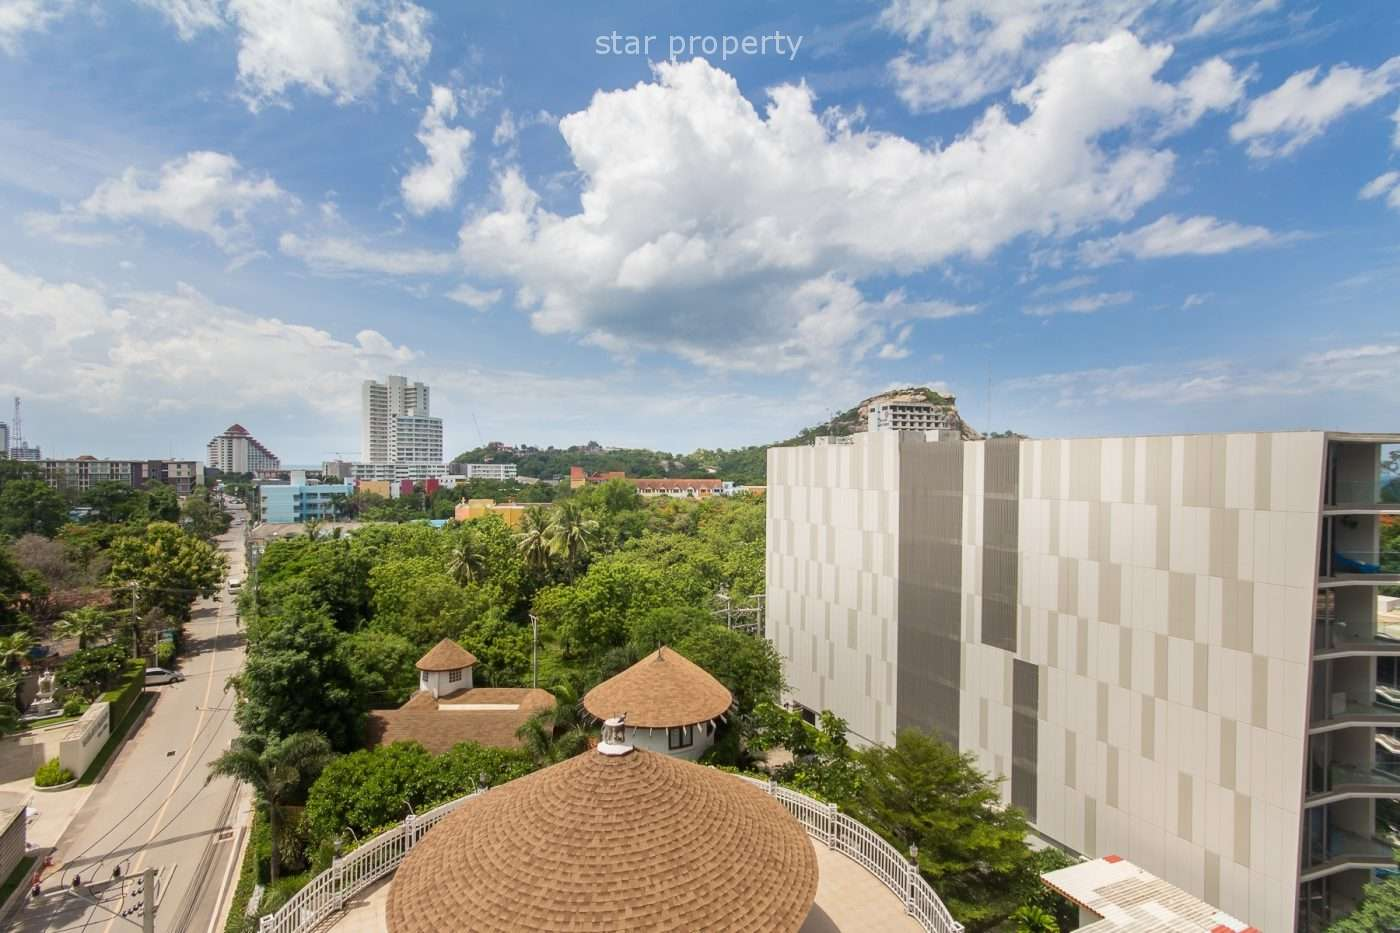 2 Bedrooms Unit at Sanctuary Khao Takiab for Sale at Sanctuary Khao Takiab